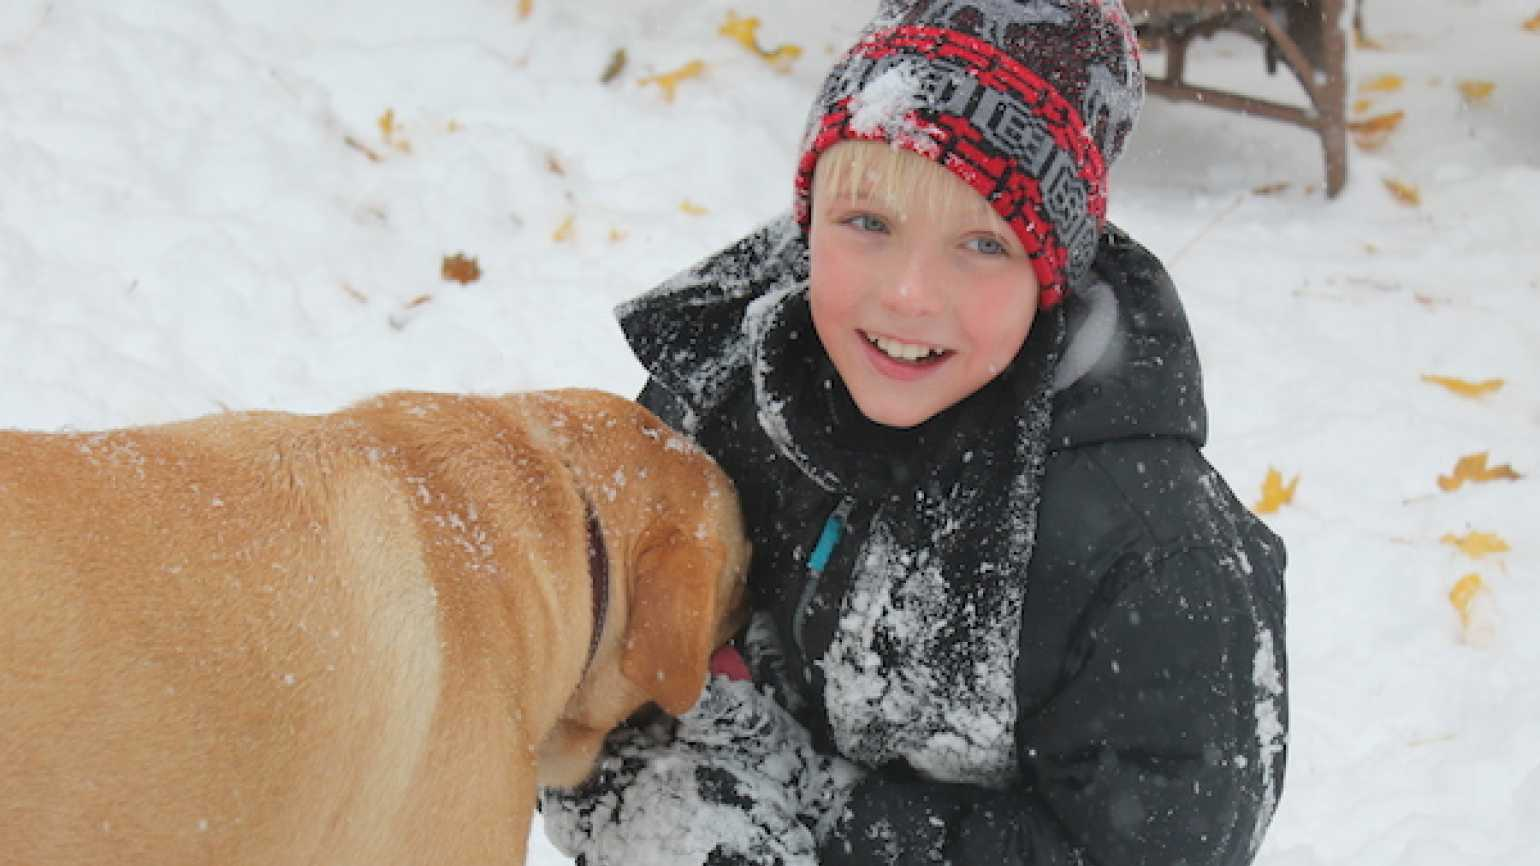 Guideposts blogger Shawnelle Eliasen's son Isaiah and dog Rugby play in the season's first snow.